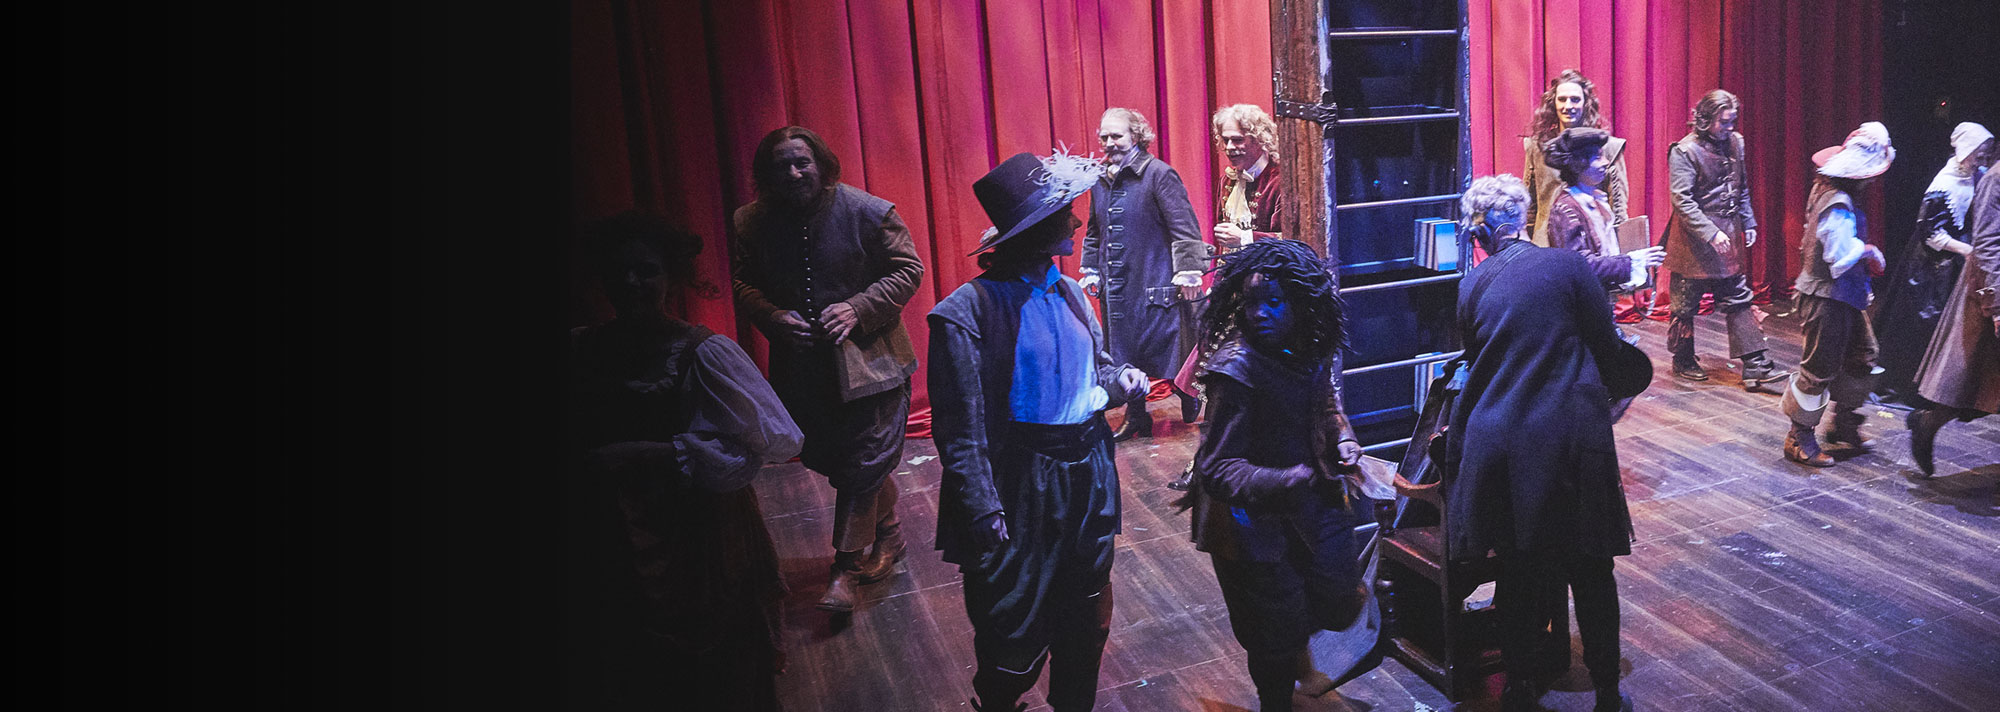 Cast of Cyrano de Bergerac (2019). Photo by Peter Andrew Lusztyk.